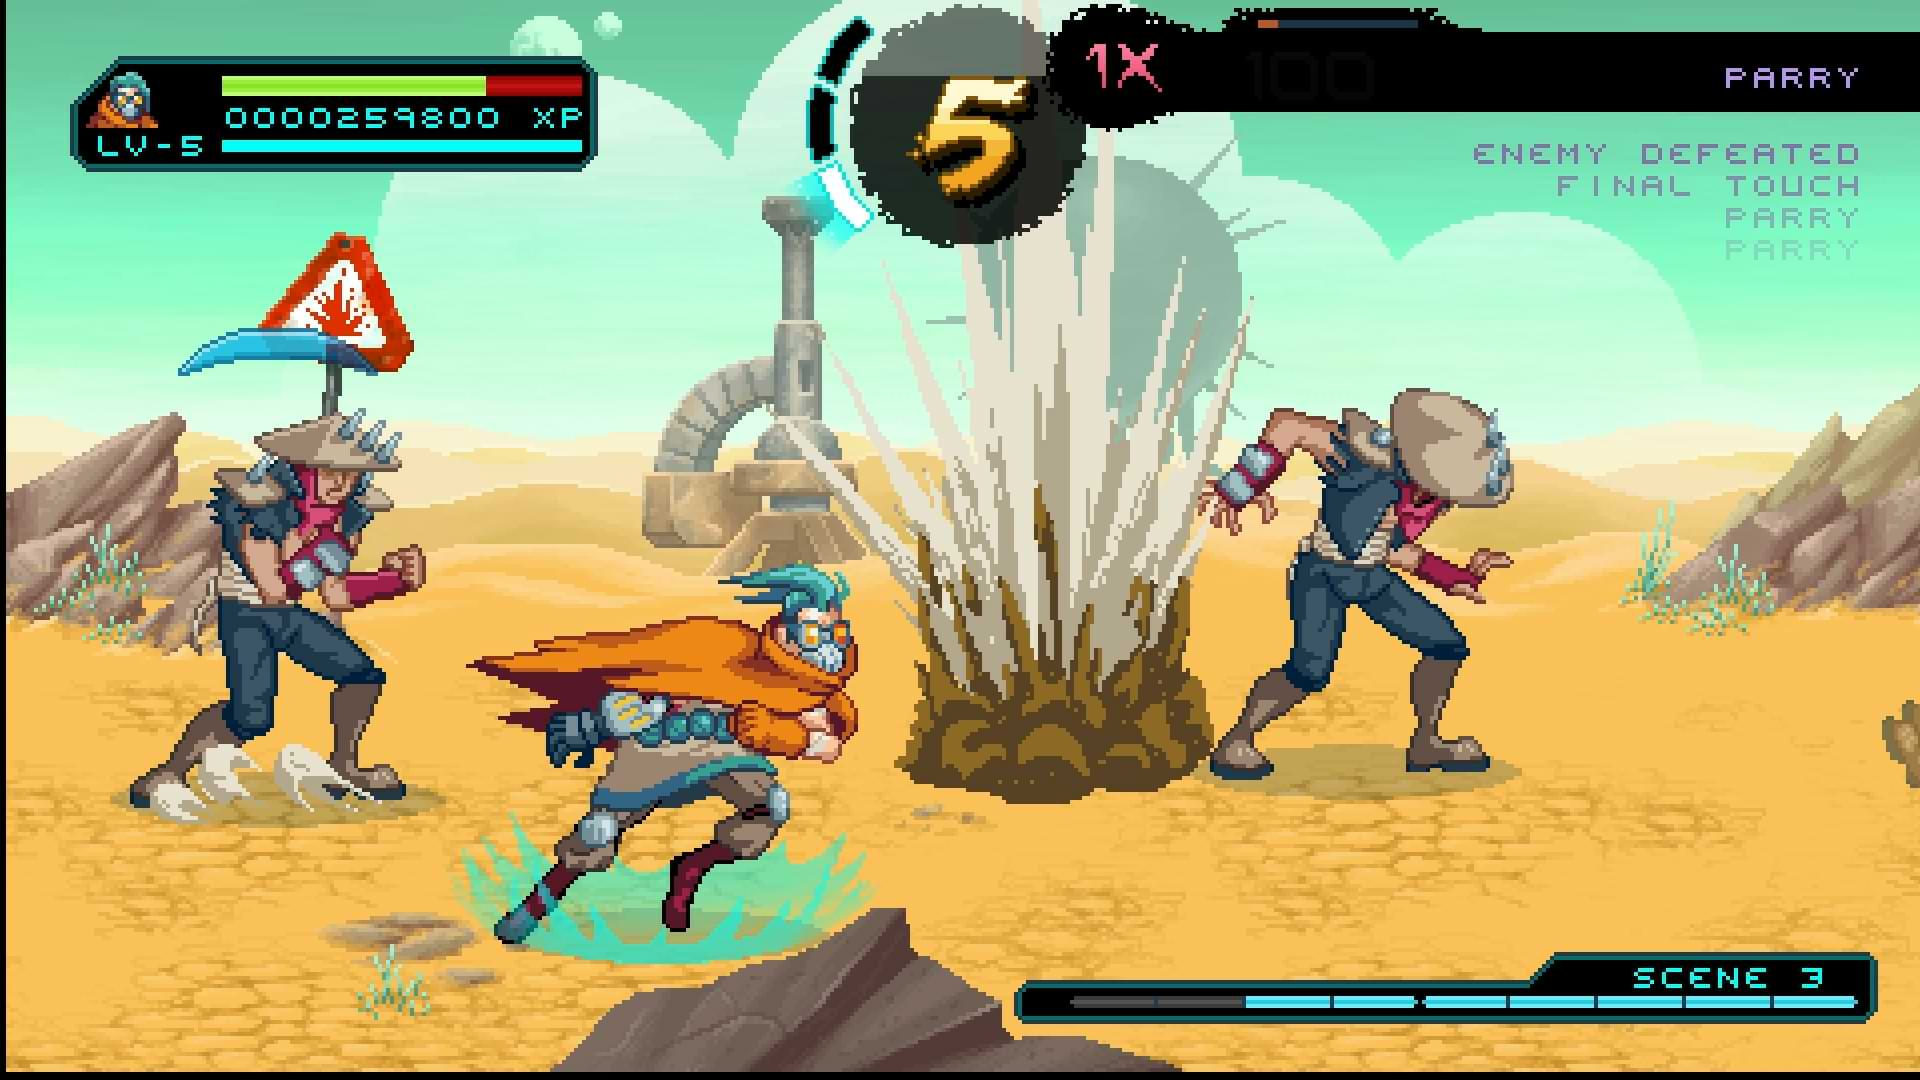 The Way of The Passive Fist - Dirt